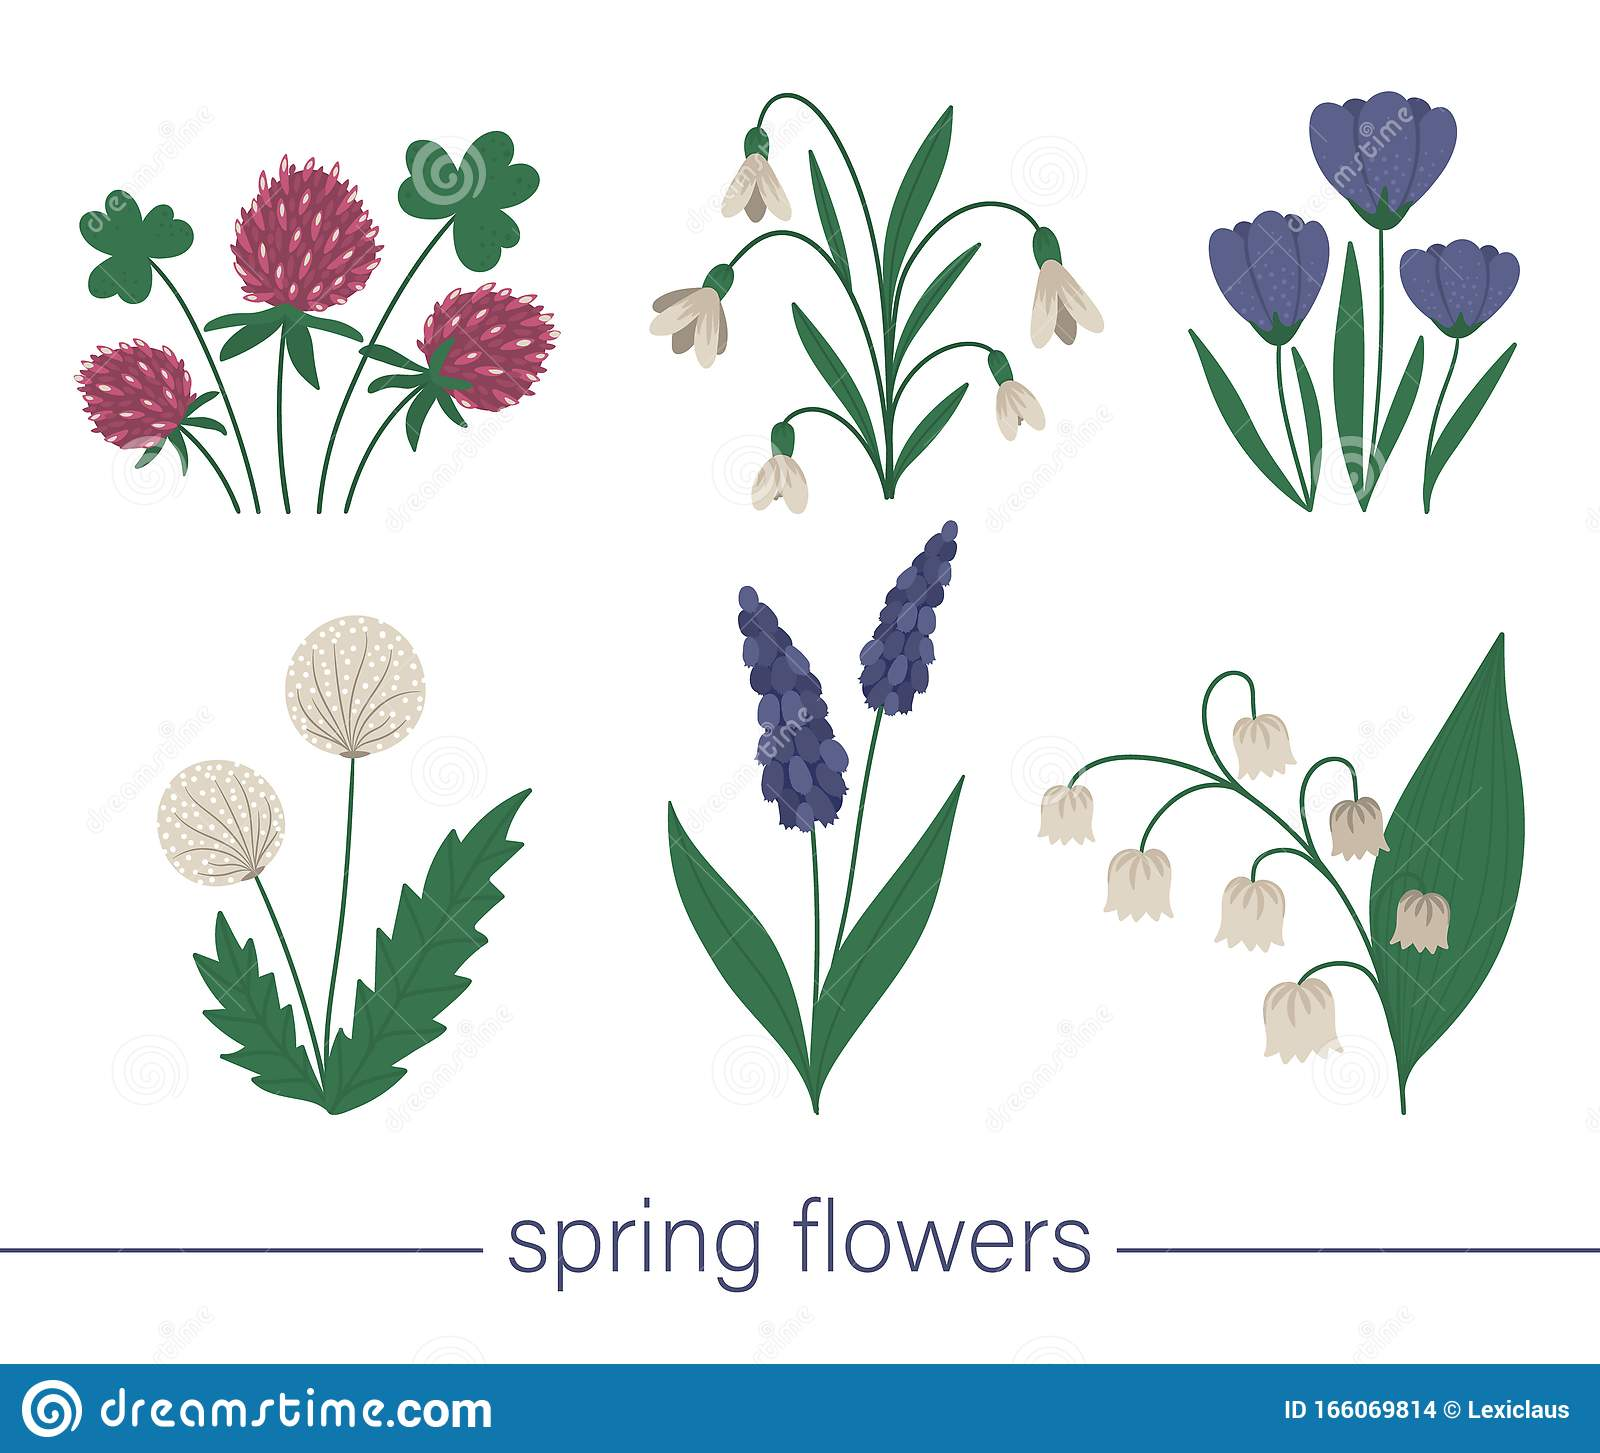 Vector Set Of Cute Flat Spring Flowers First Blooming Plants Illustration Floral Clip Art Collection Isolated On White Stock Vector Illustration Of Background Bunch 166069814